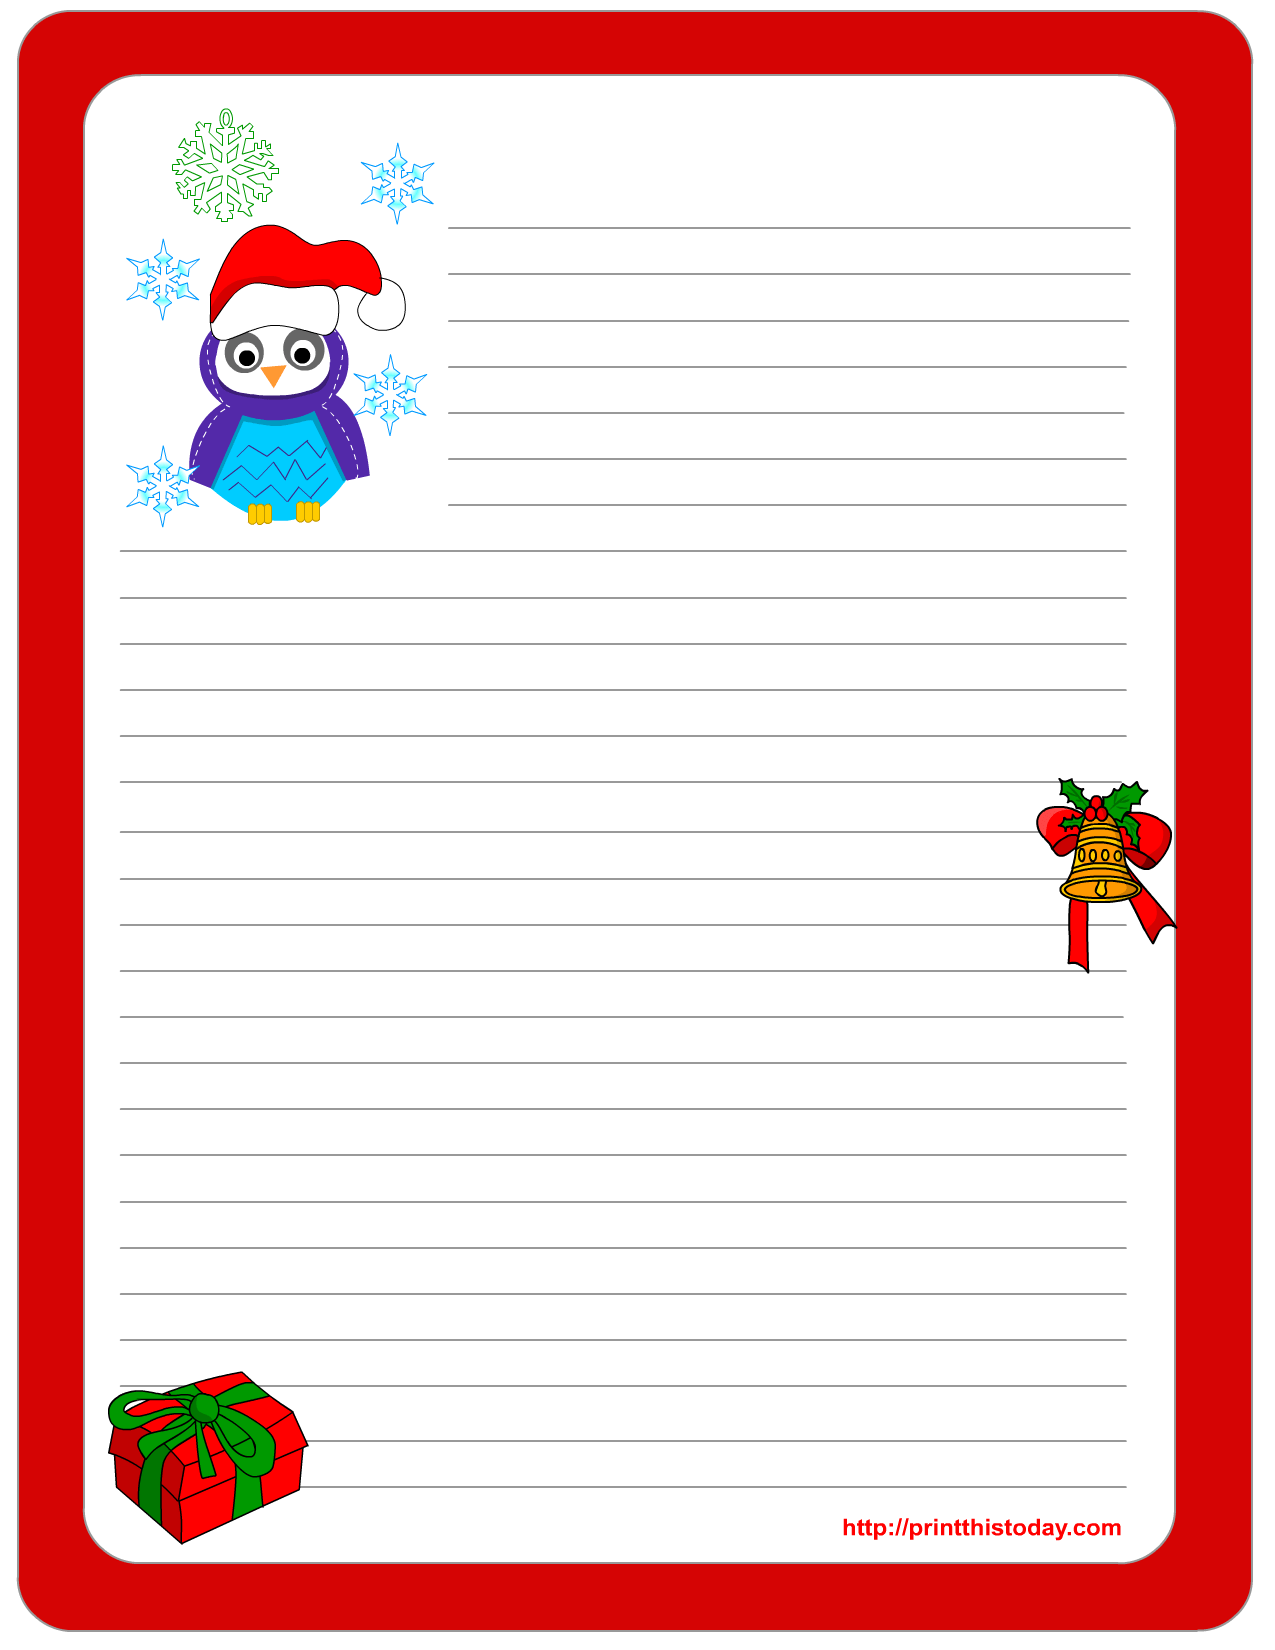 Doc419542 Free Printable Christmas List Template  keep